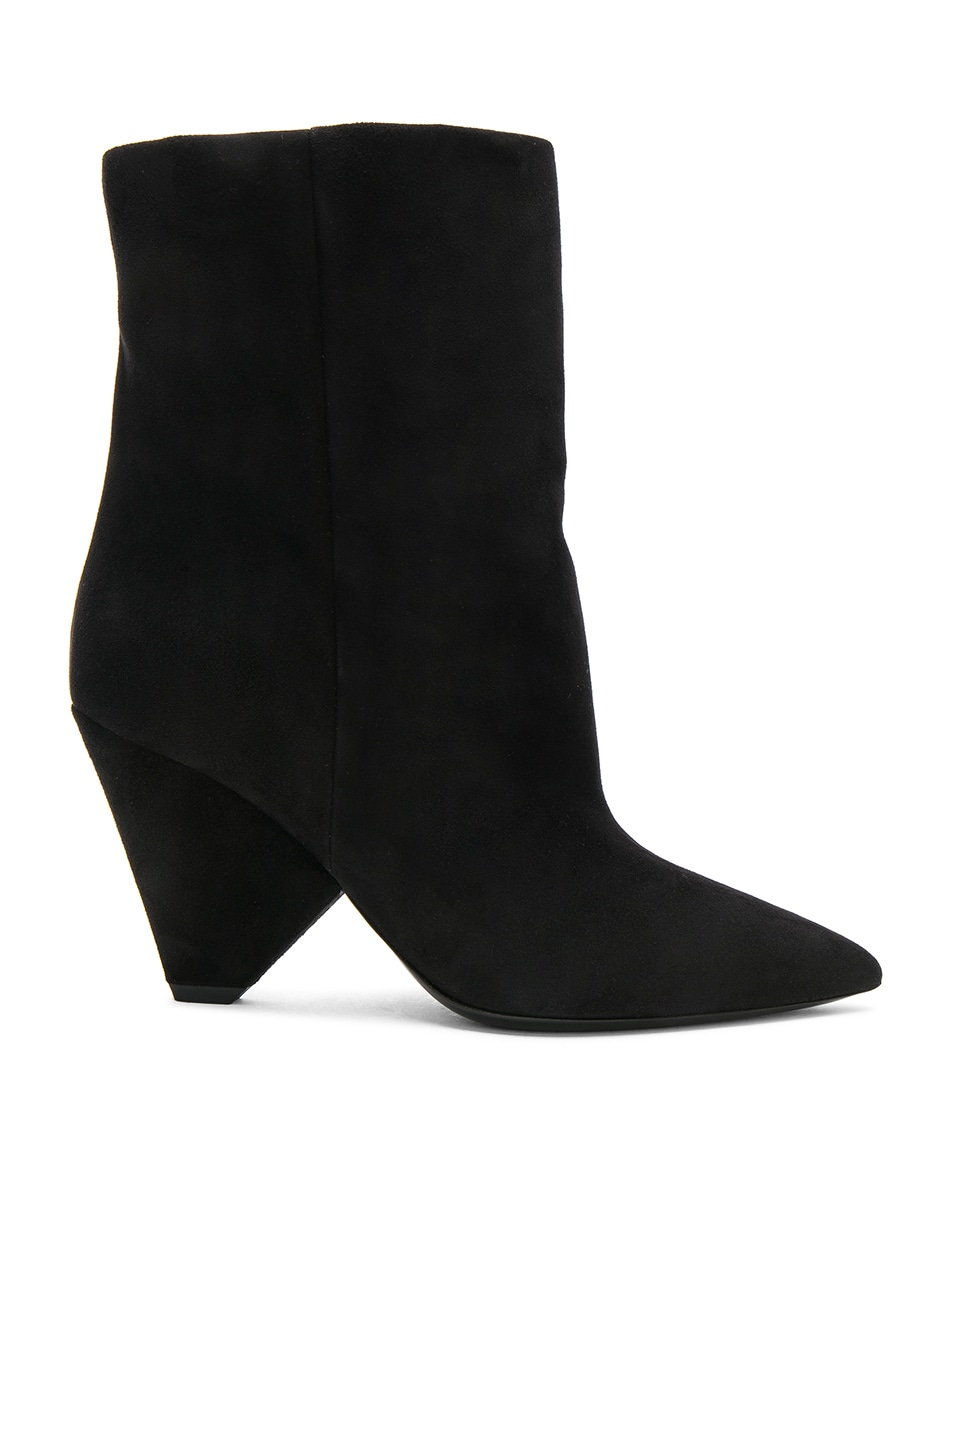 b8088c3fd32 Saint Laurent Suede Niki Ankle Boots in Black | FWRD